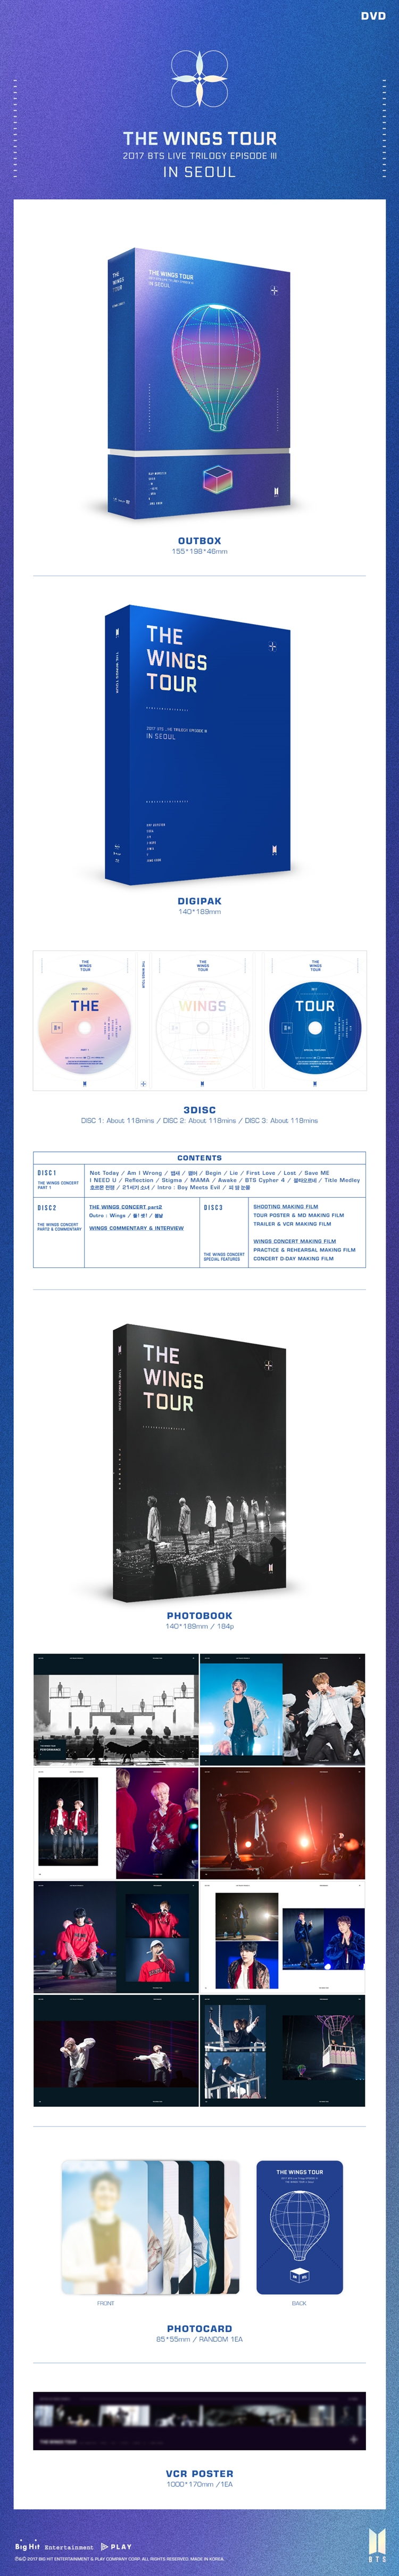 bts-trilogy-the-wings-tour-dvd